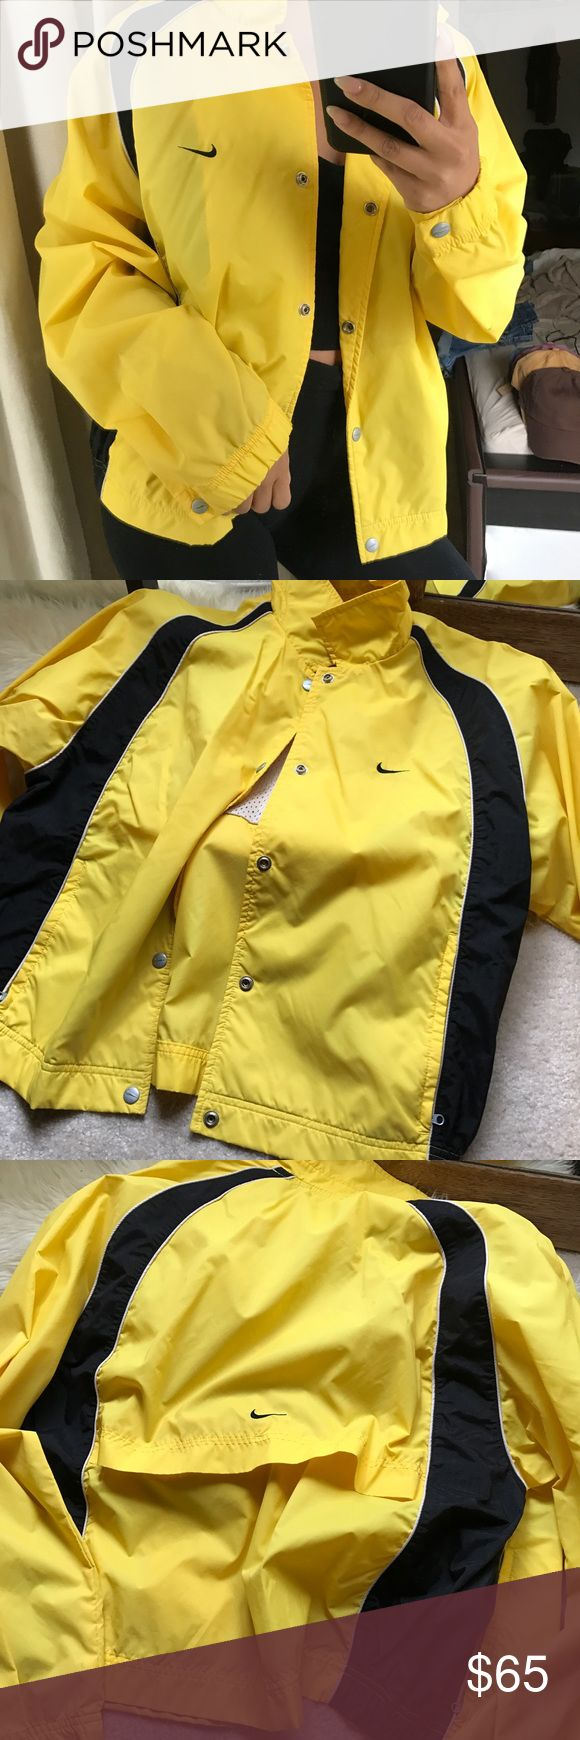 Nike varsity Windbreaker Size large fits like medium . No trading and the price is firm unless bundled or reasonable offer is made. 🖤 Nike Jackets & Coats